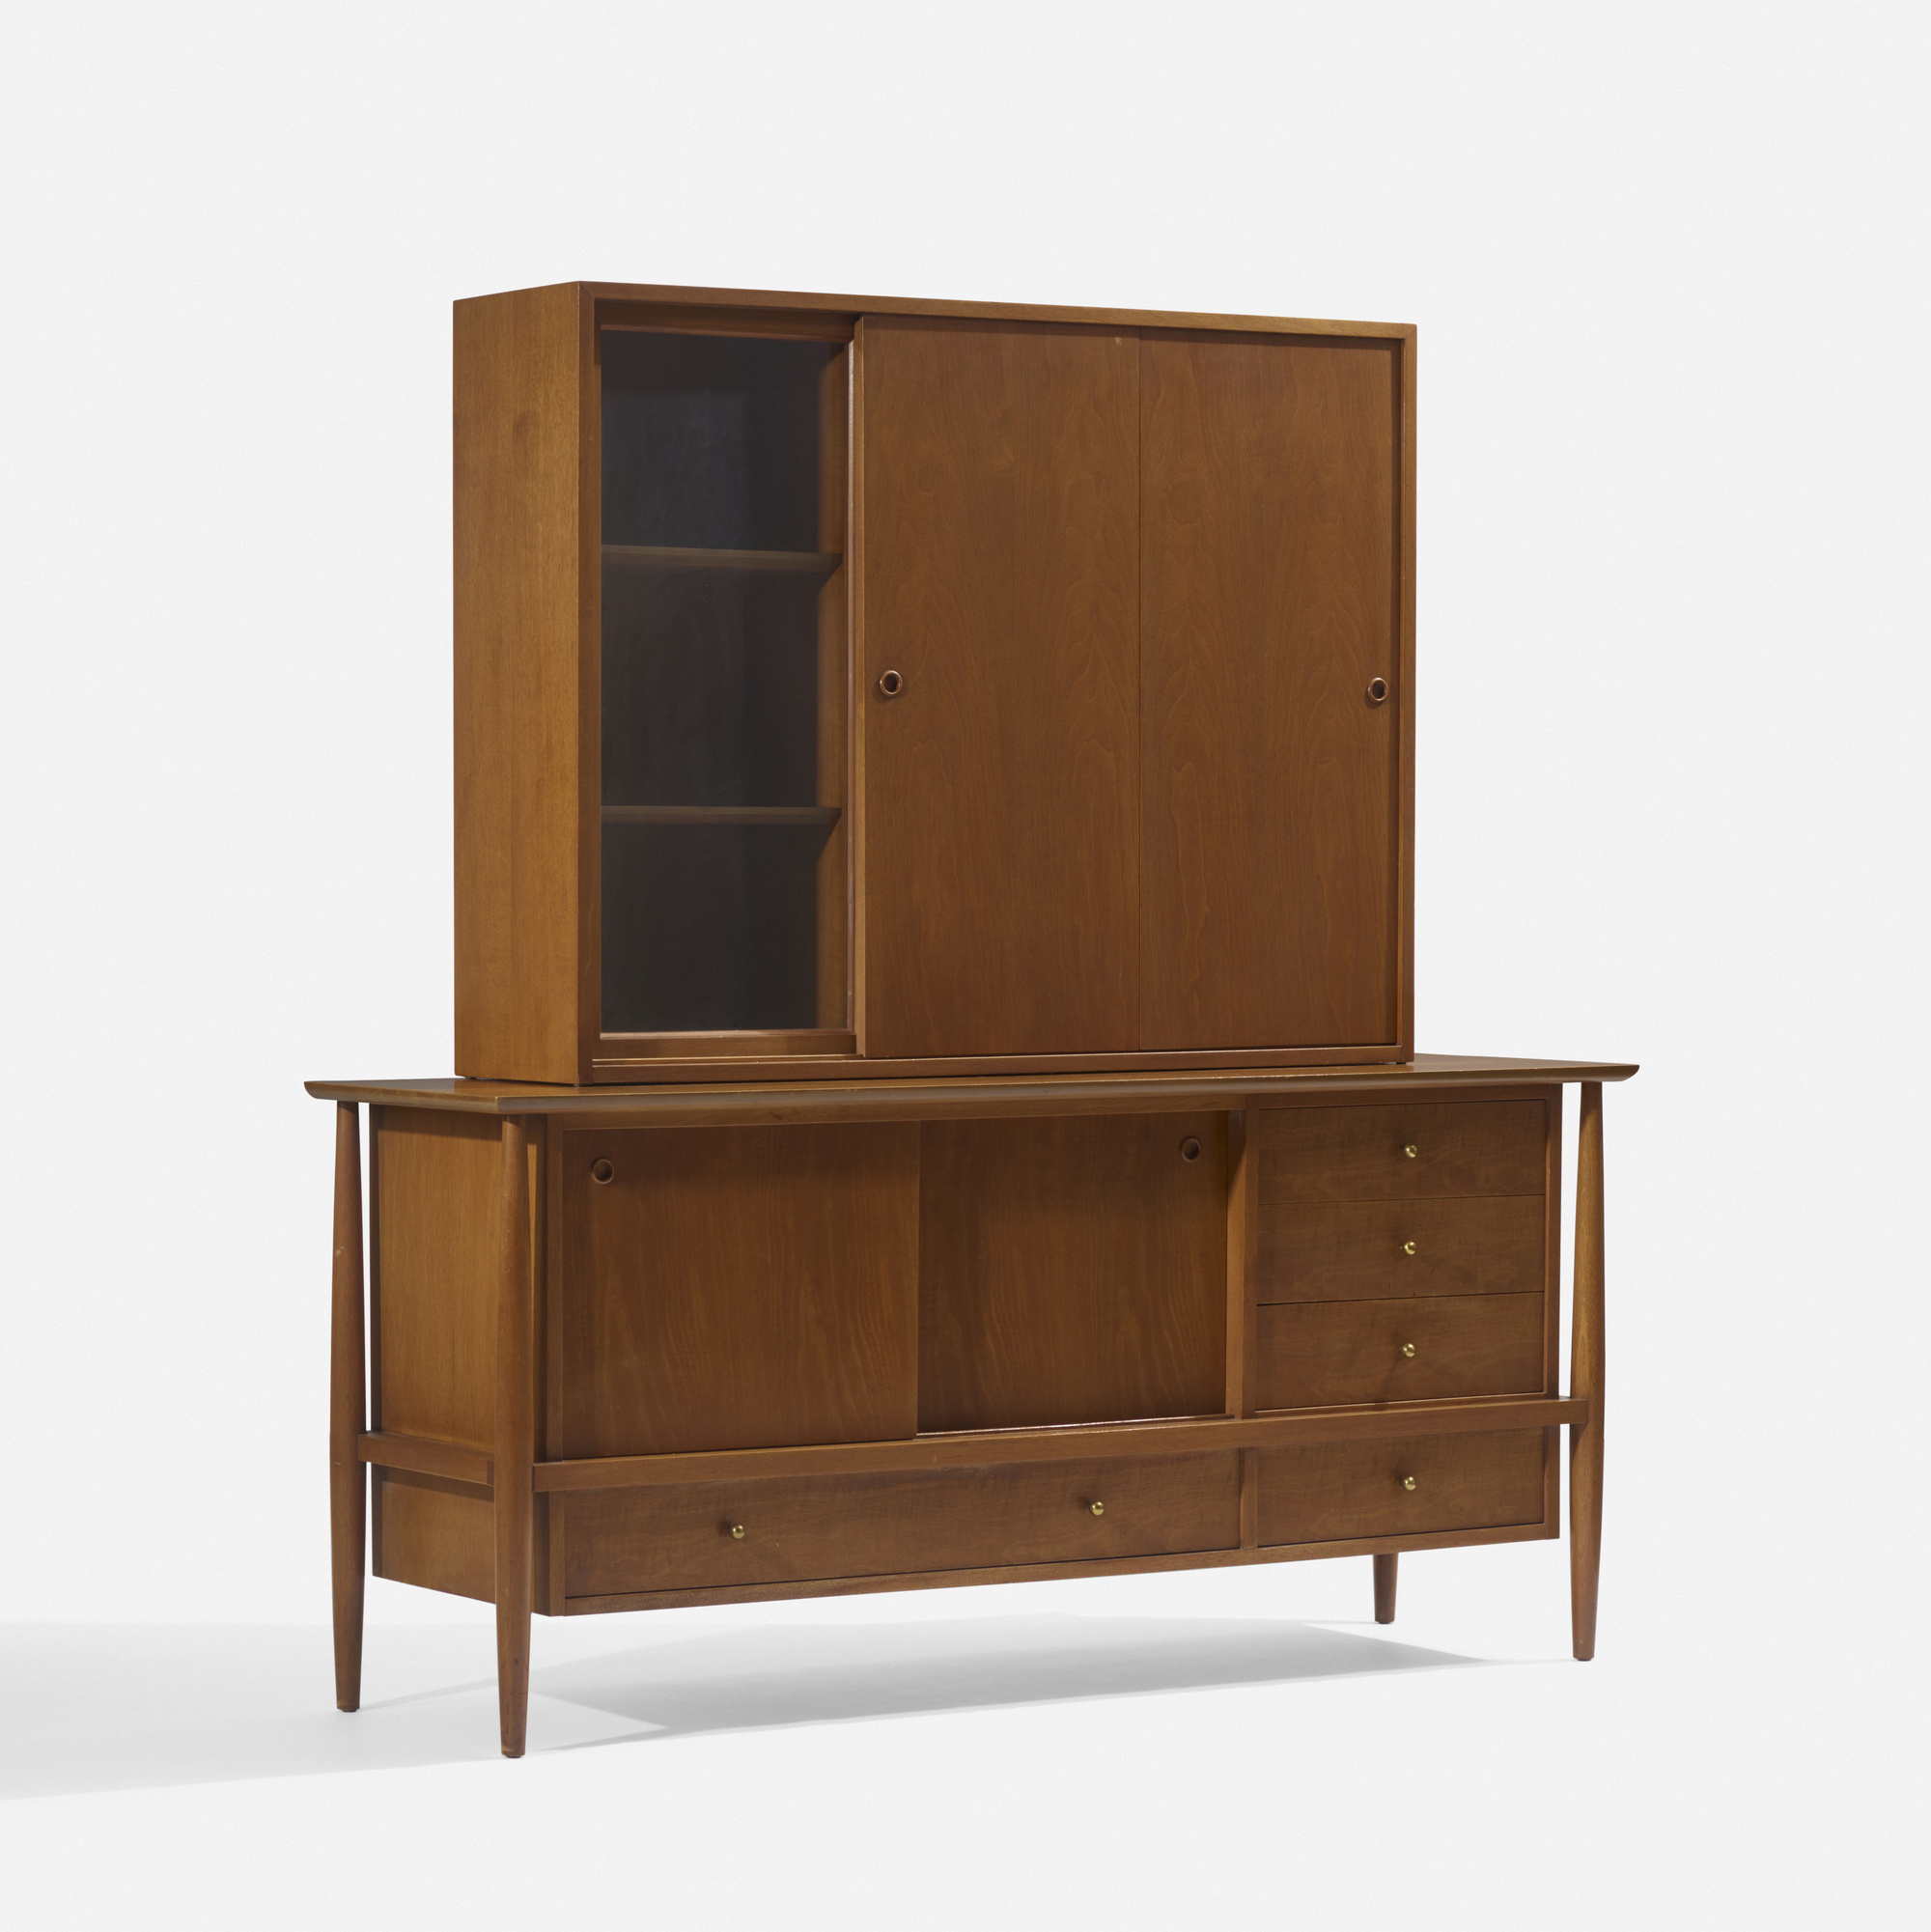 137: In the manner of Finn Juhl / credenza and cabinet (2 of 3)